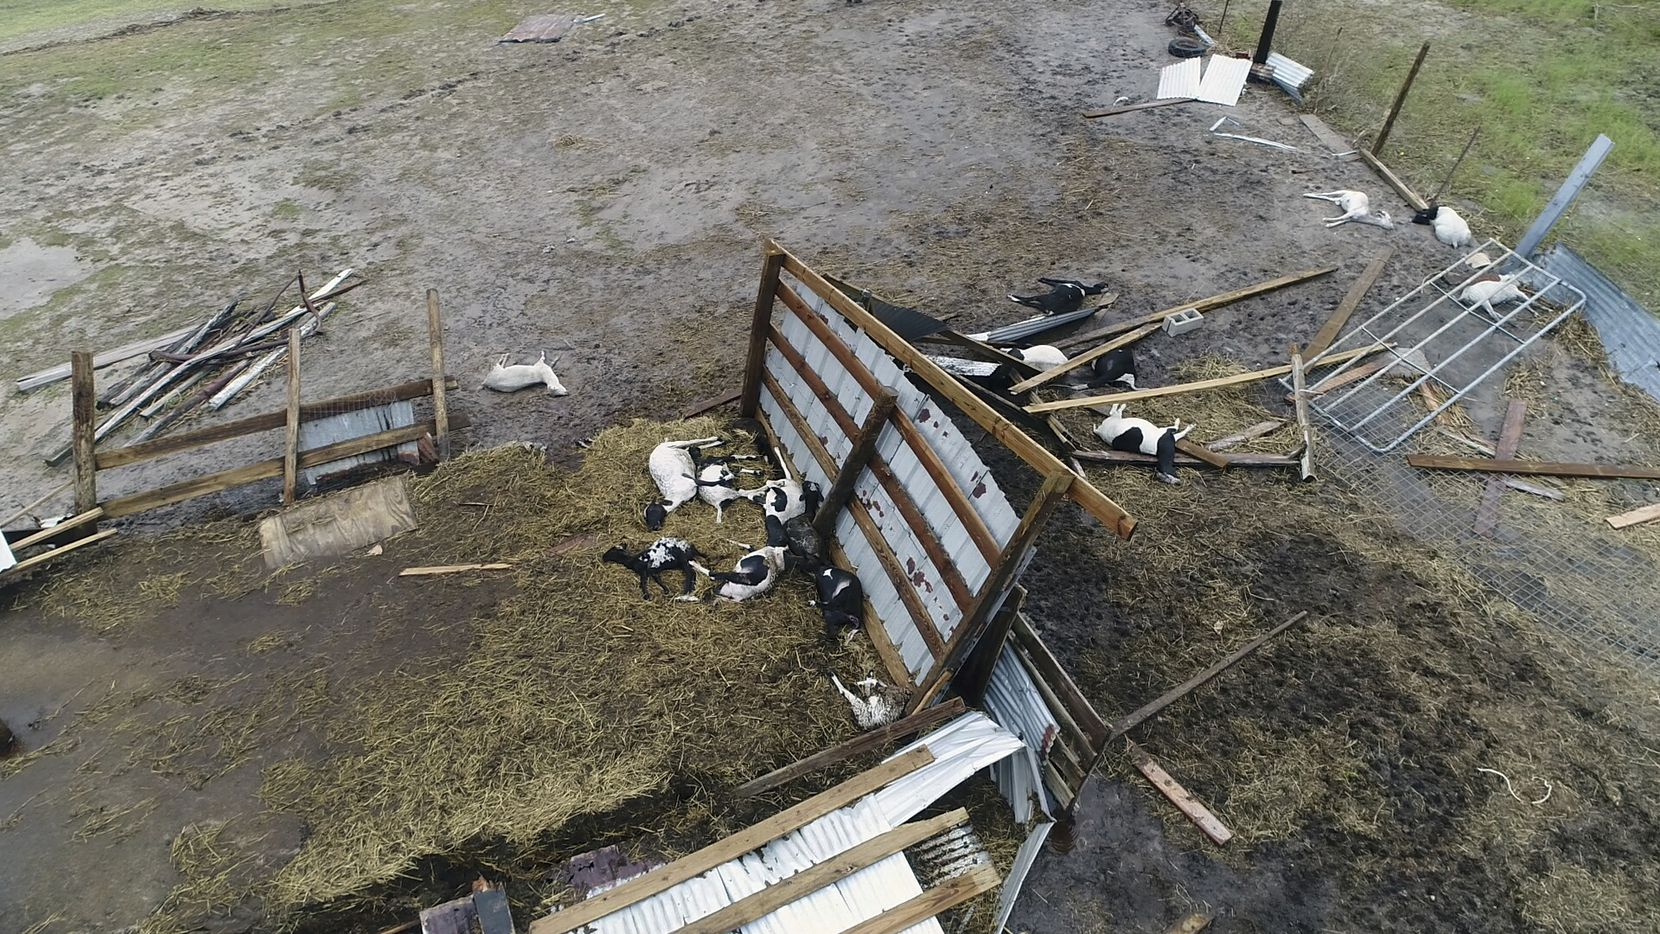 This aerial image shows dead cows in the wake of Hurricane Harvey on Monday, Aug. 28, 2017, in Bayside, Texas. Harvey hit the coast as a Category 4 hurricane.